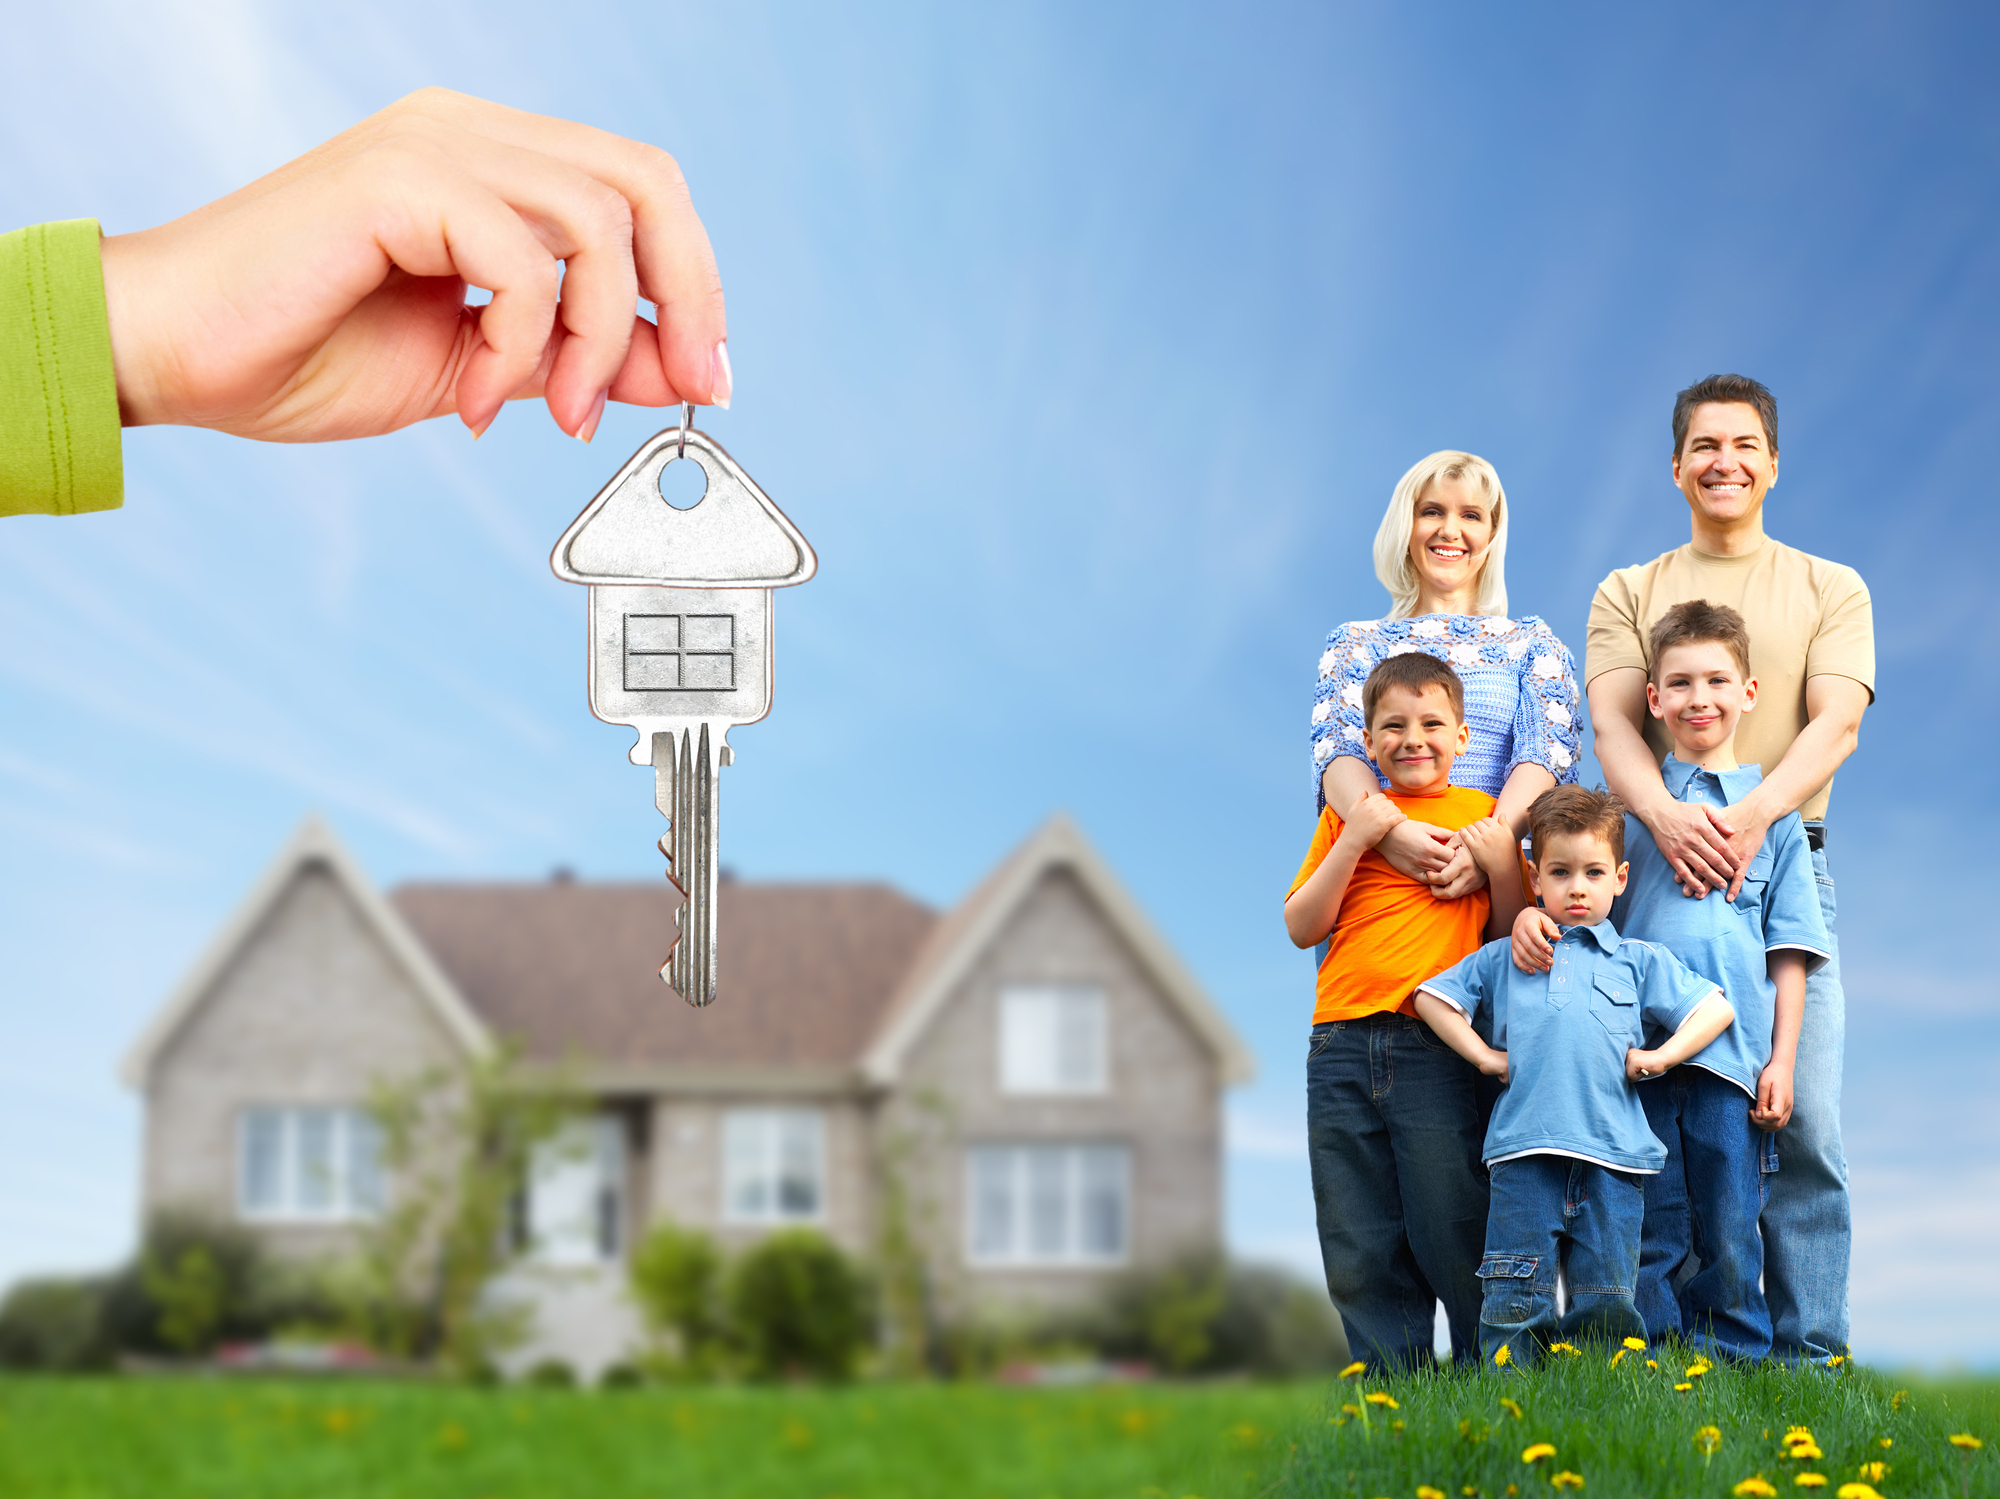 http://www.dreamstime.com/royalty-free-stock-photos-happy-family-near-new-house-real-estate-image35582048